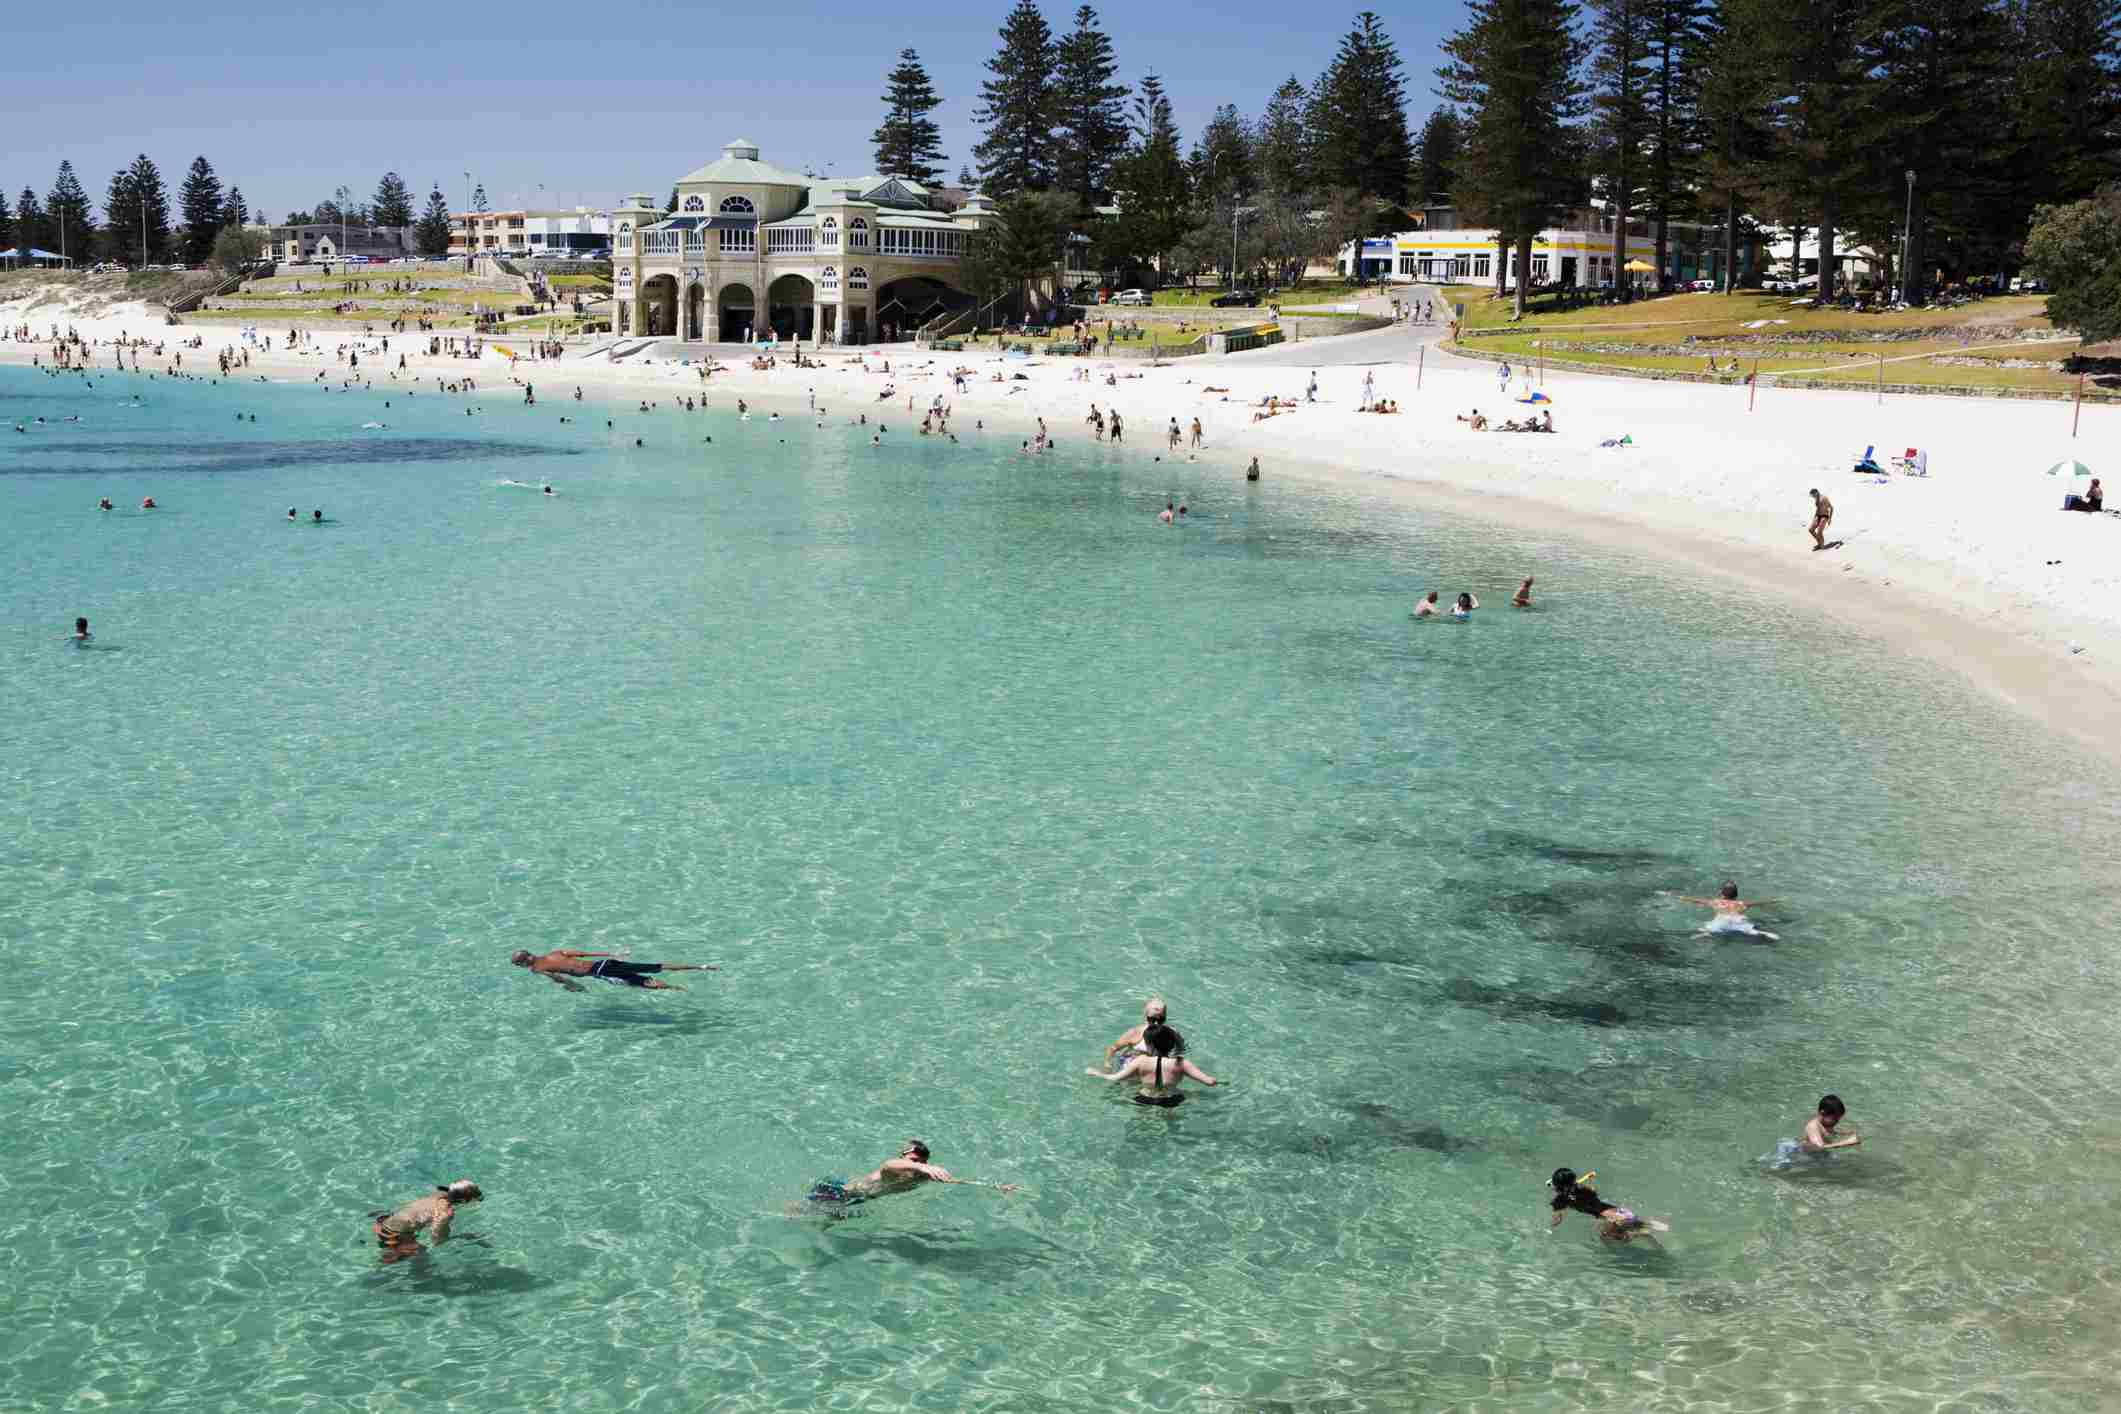 People swimming at Cottesloe Beach with Indiana Teahouse in the background.